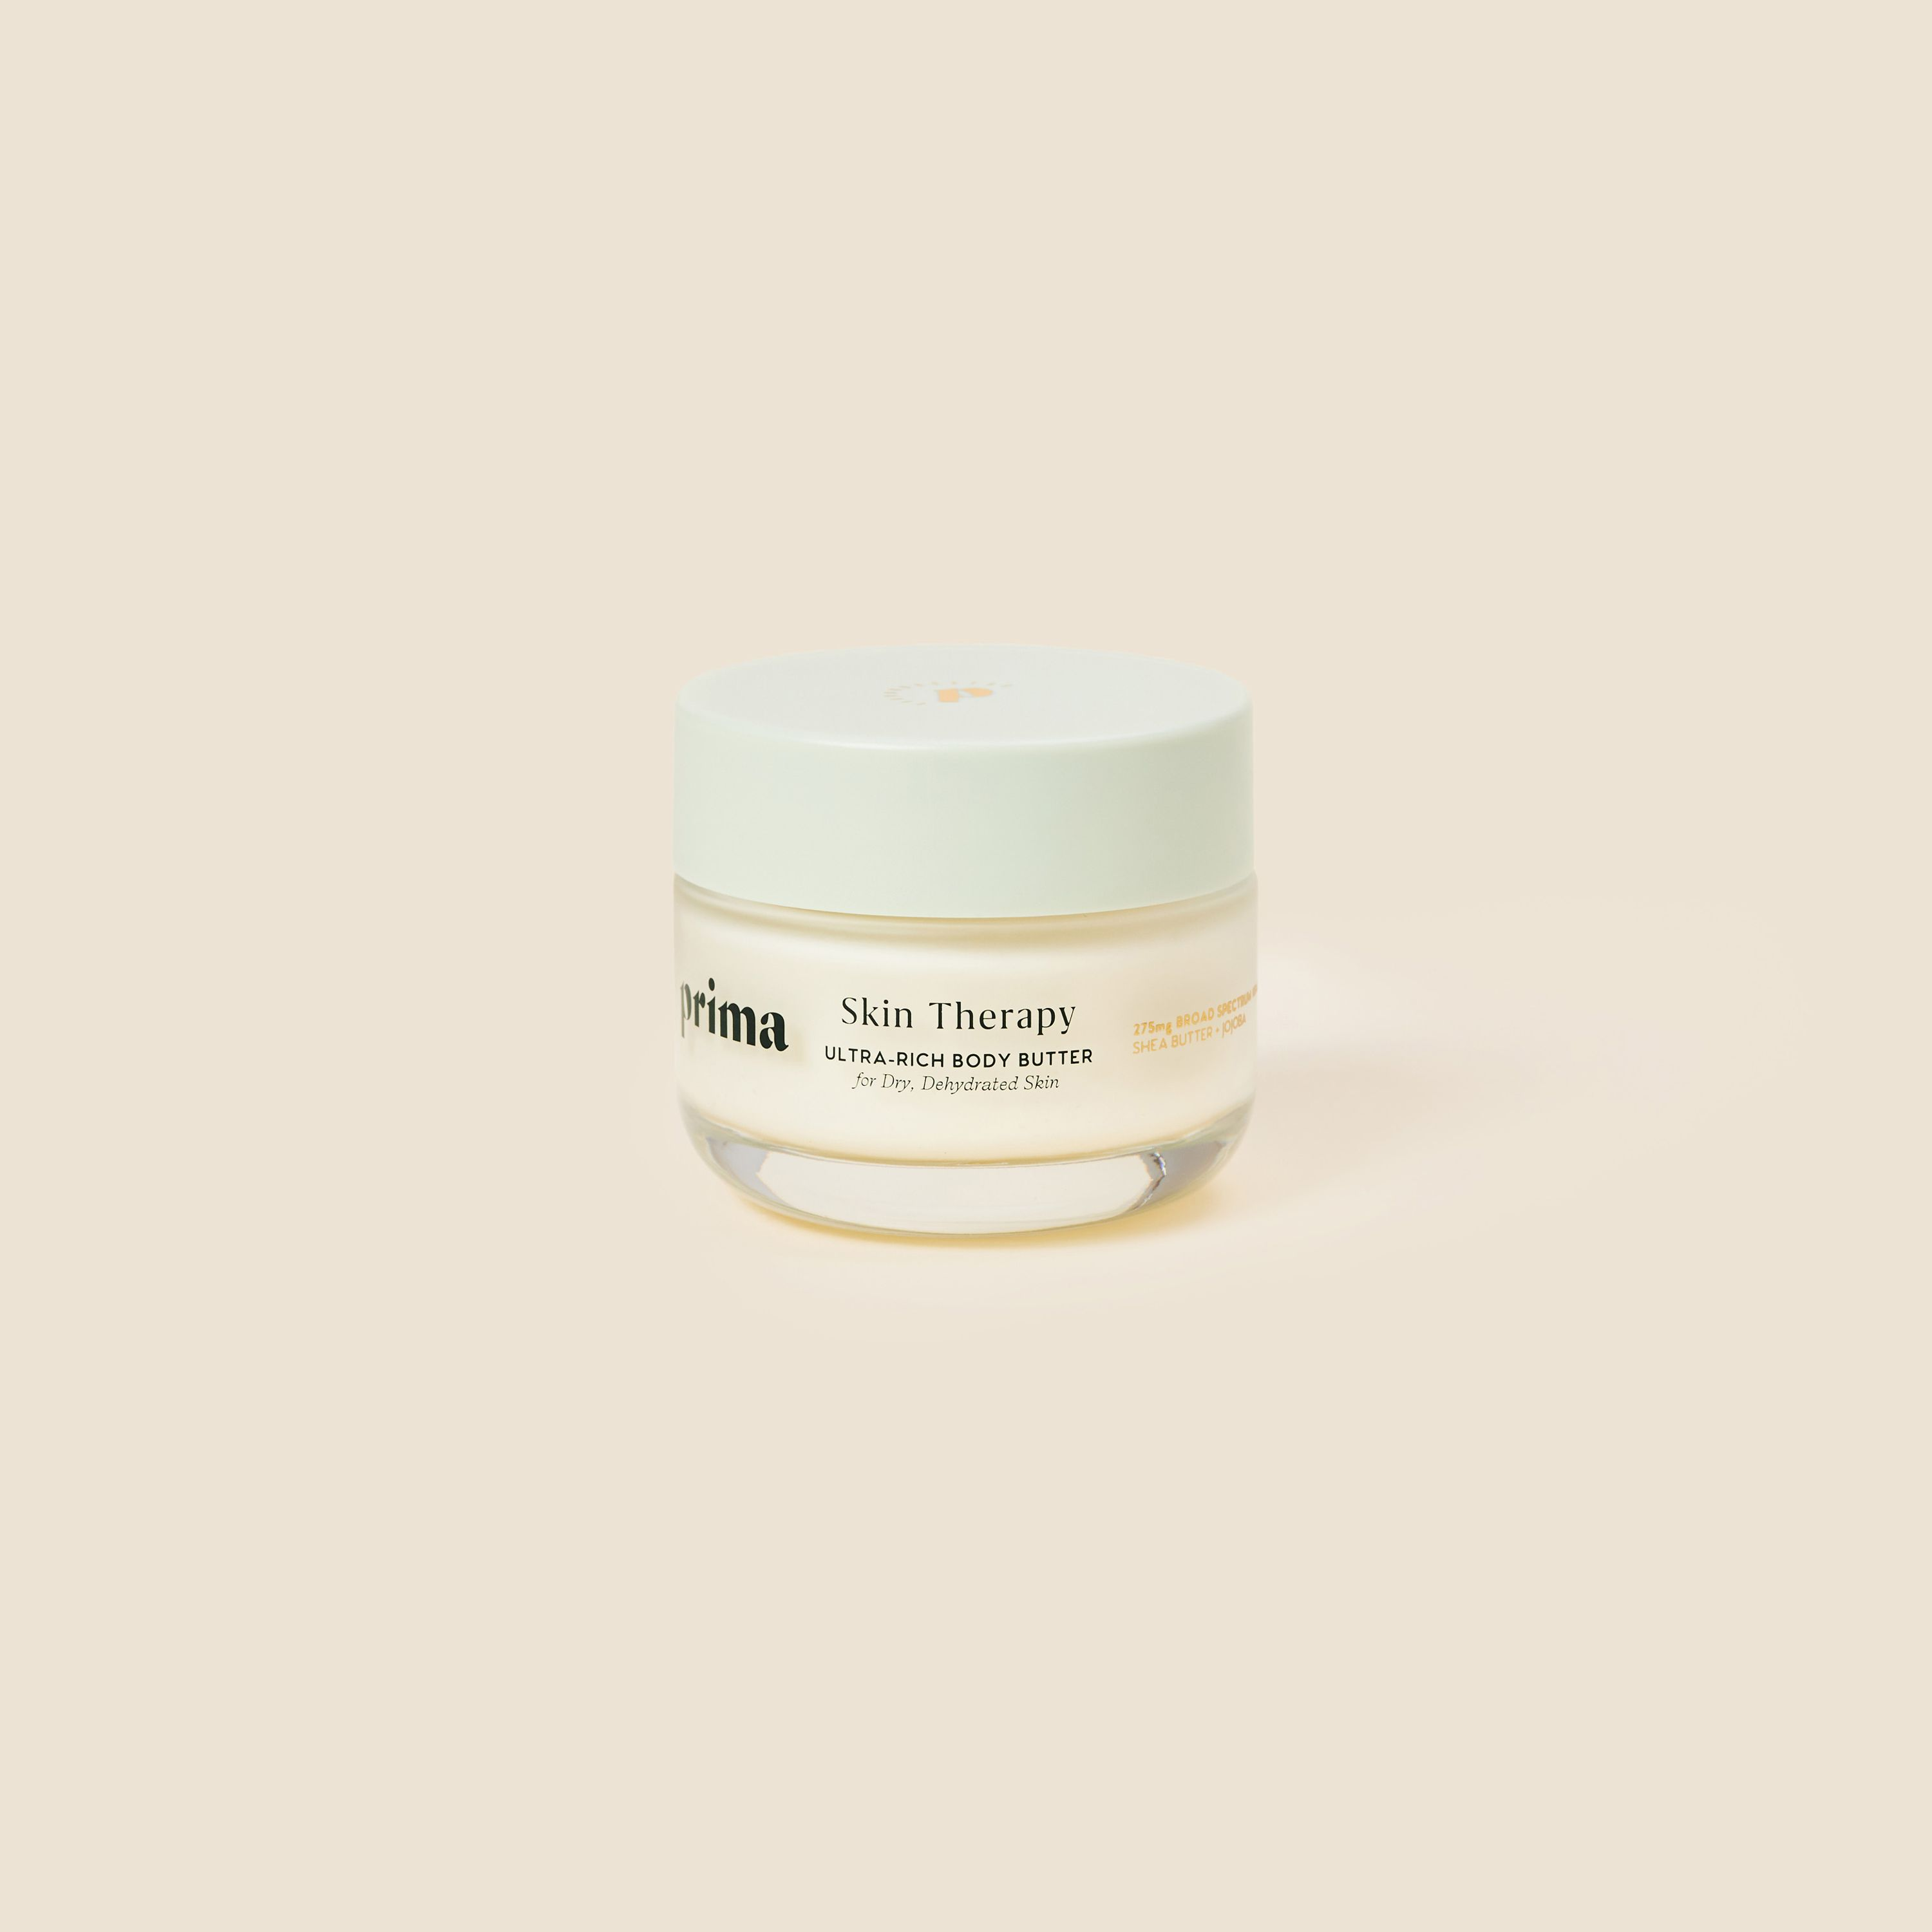 Prima's CBD Cream with Hemp Oil and Shea Butter